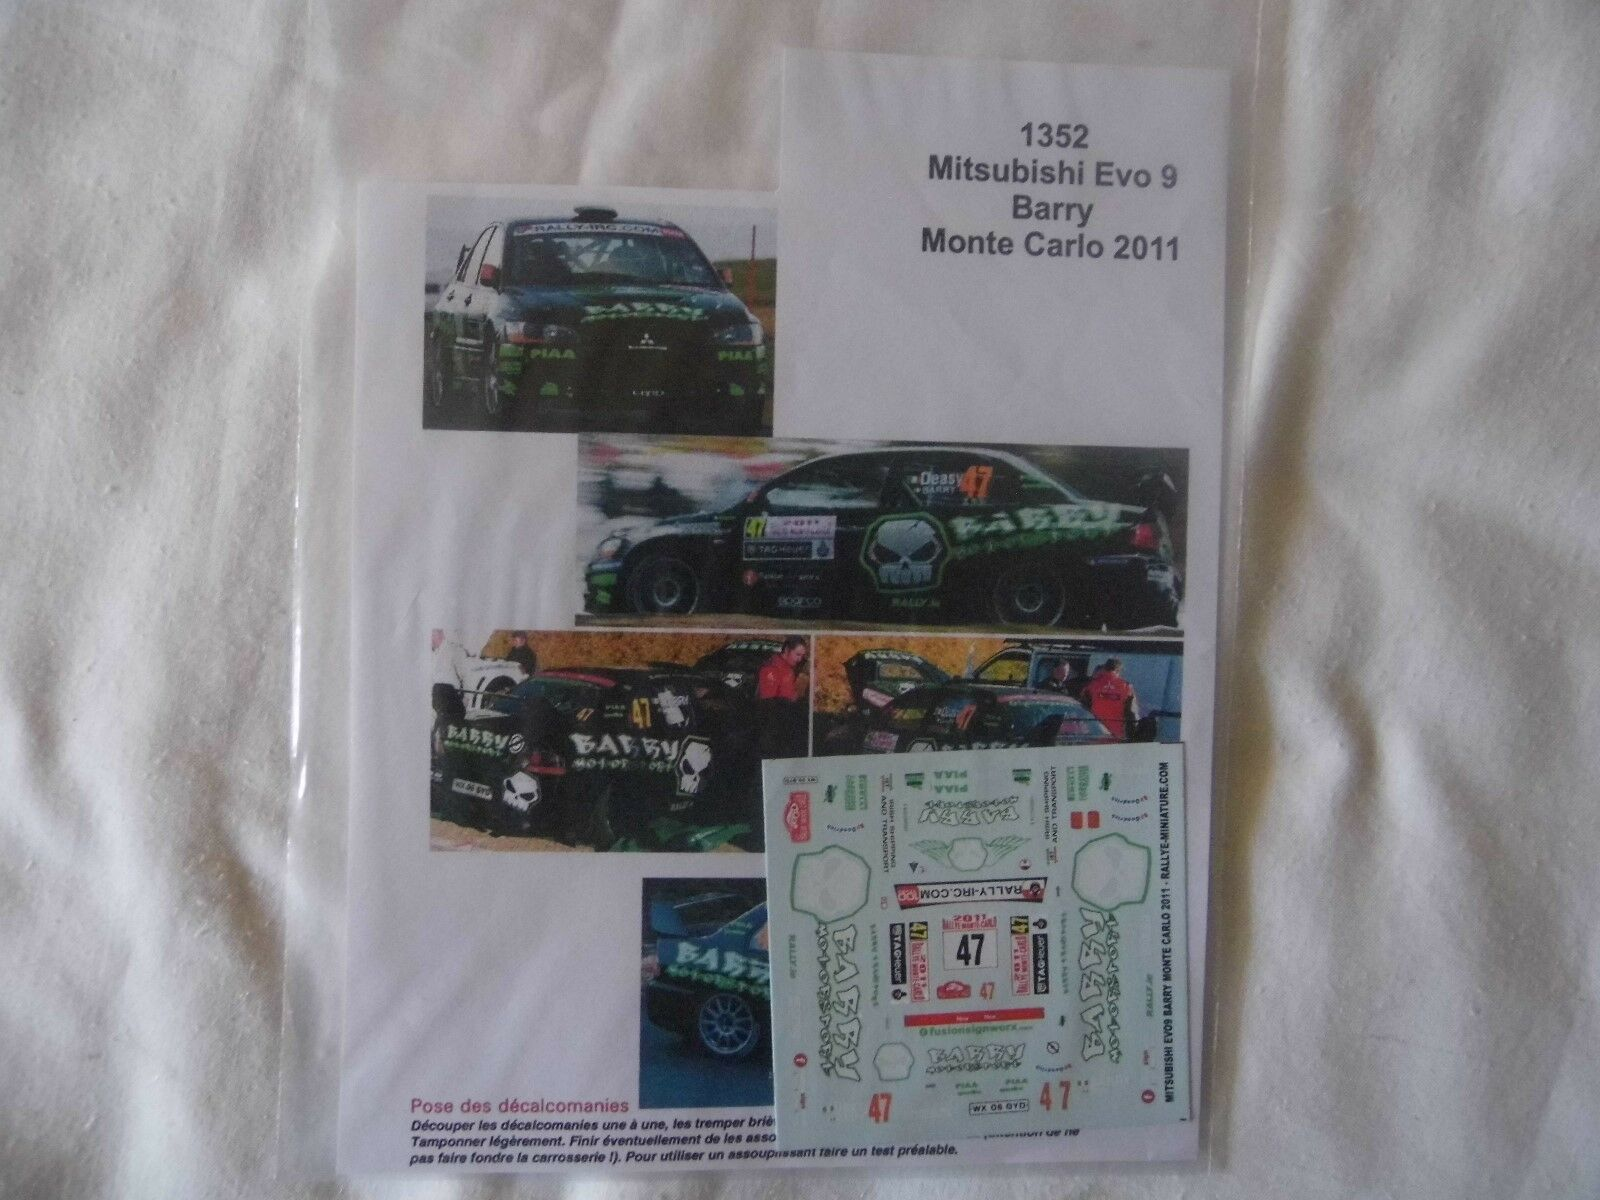 NEW 1 43 MITSUBISHI EVO9 Decal Barry 2011 Monte Carlo Rally Motorsport